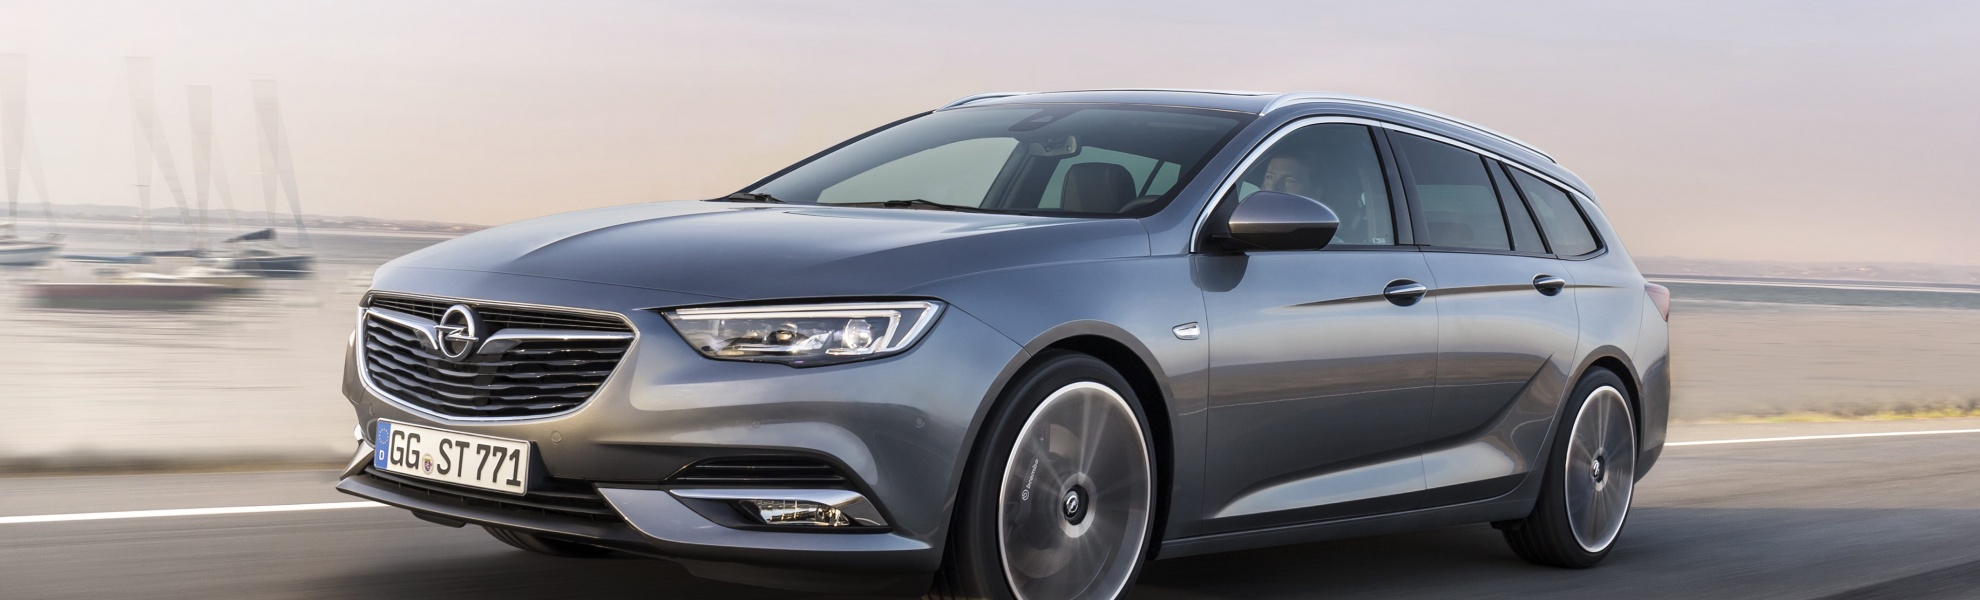 Opel-Insignia-Sports-Tourer-304054.jpg